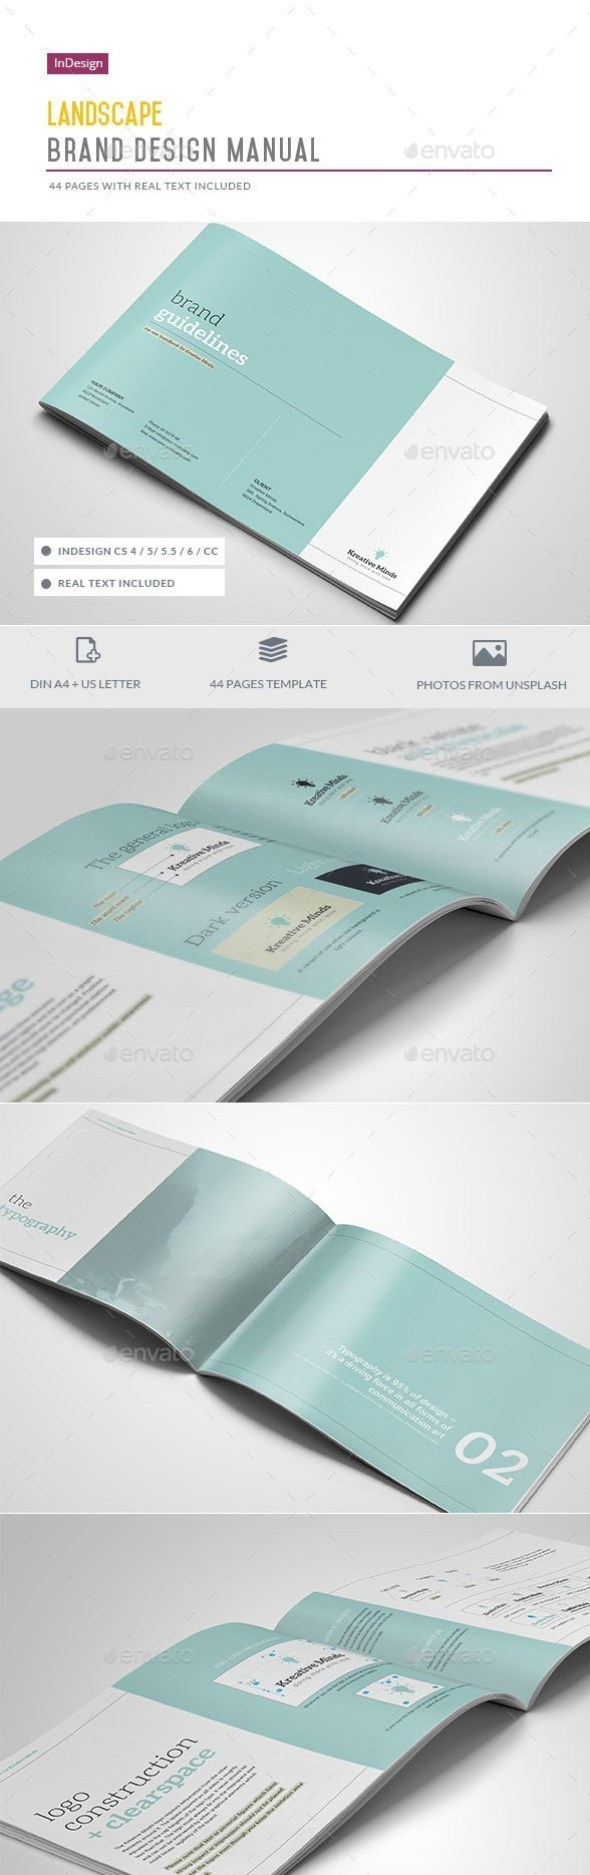 Brand Guidelines - 44 Pages